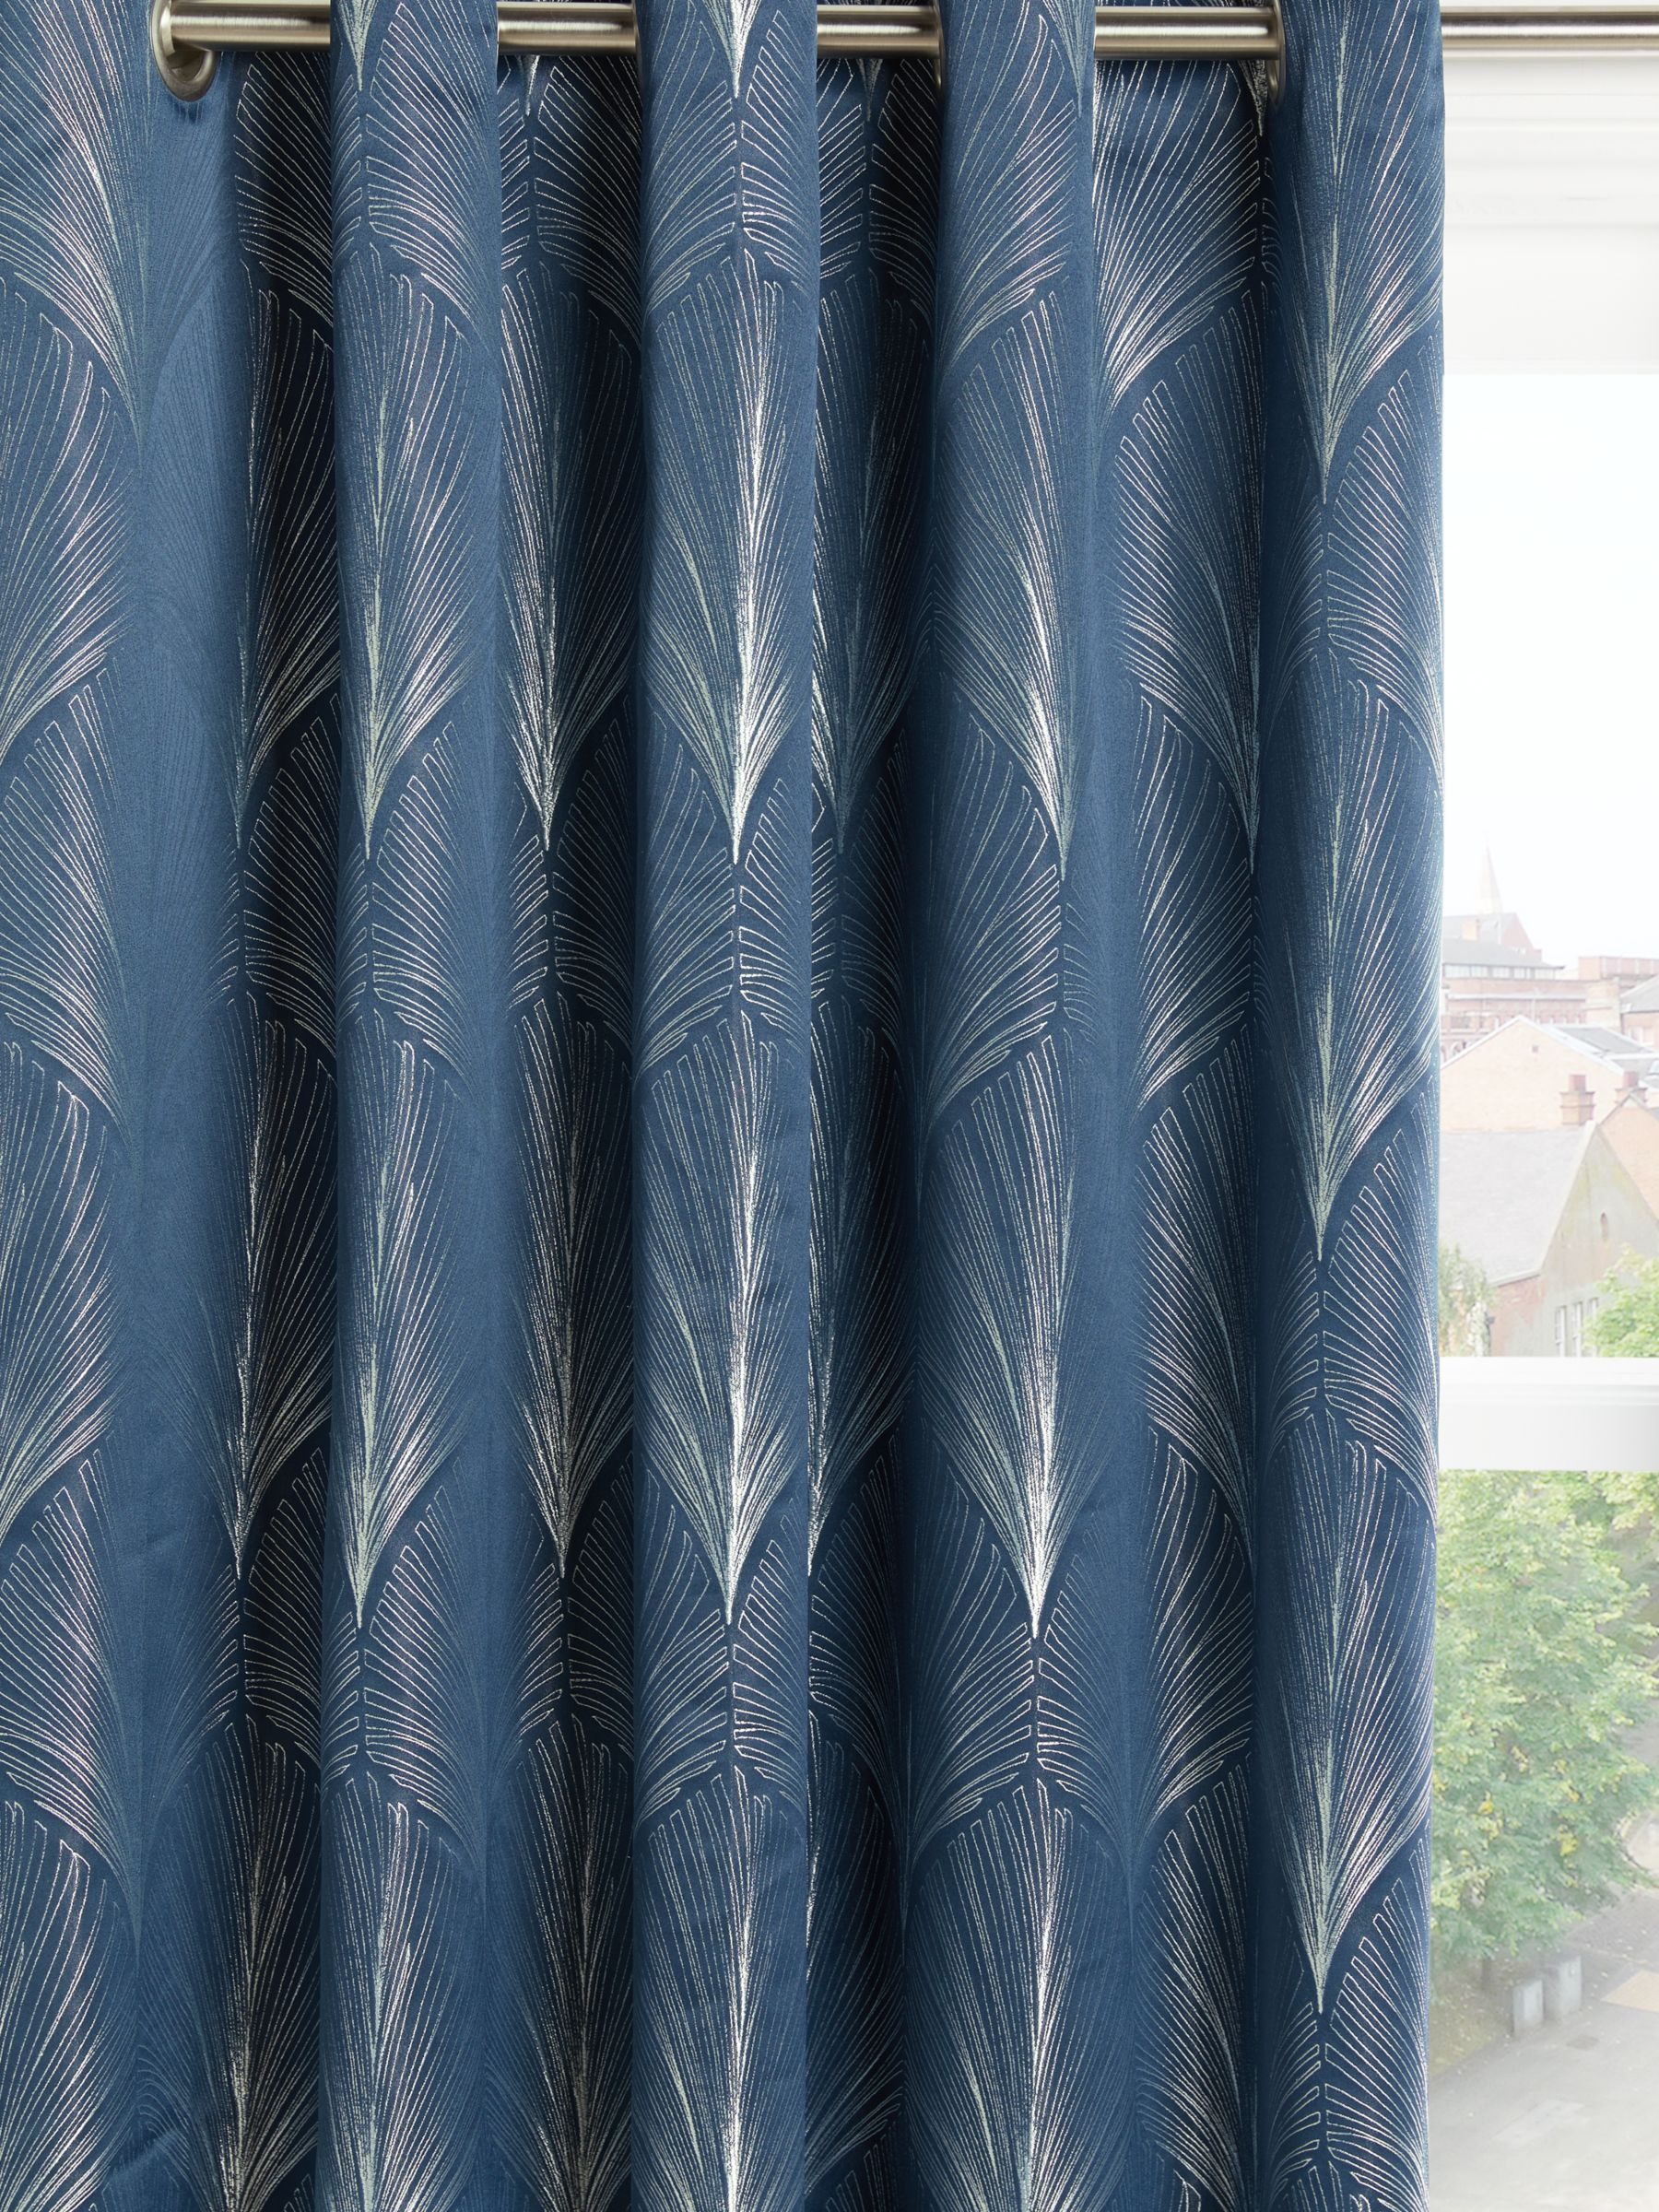 John Lewis & Partners Deco Fan Pair Lined Eyelet Curtains, Navy